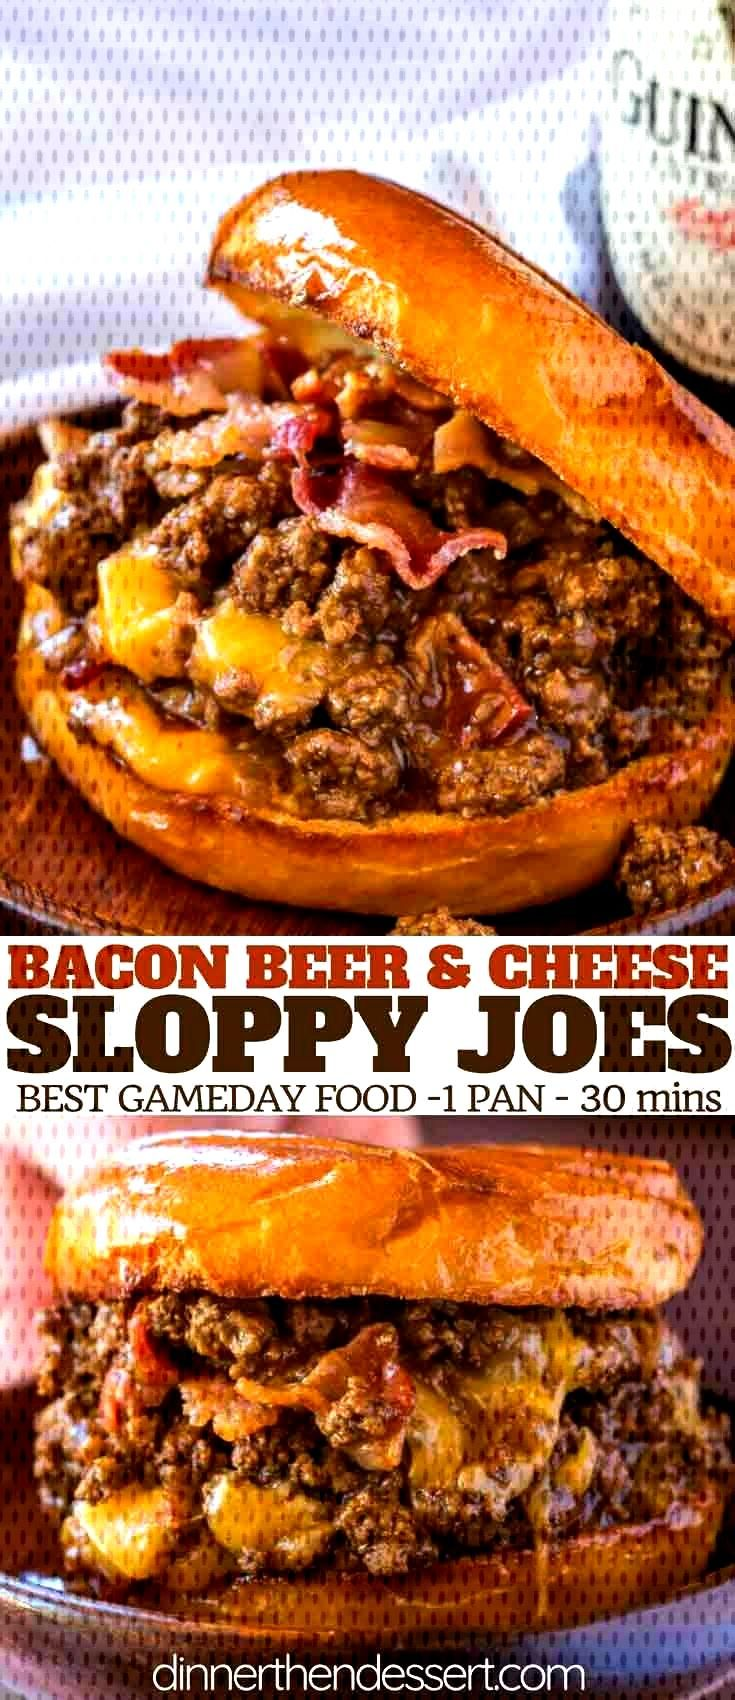 Bacon, Beer and Cheese Sloppy Joes are the perfect gameday food for a crowd with a Guinness sauce a